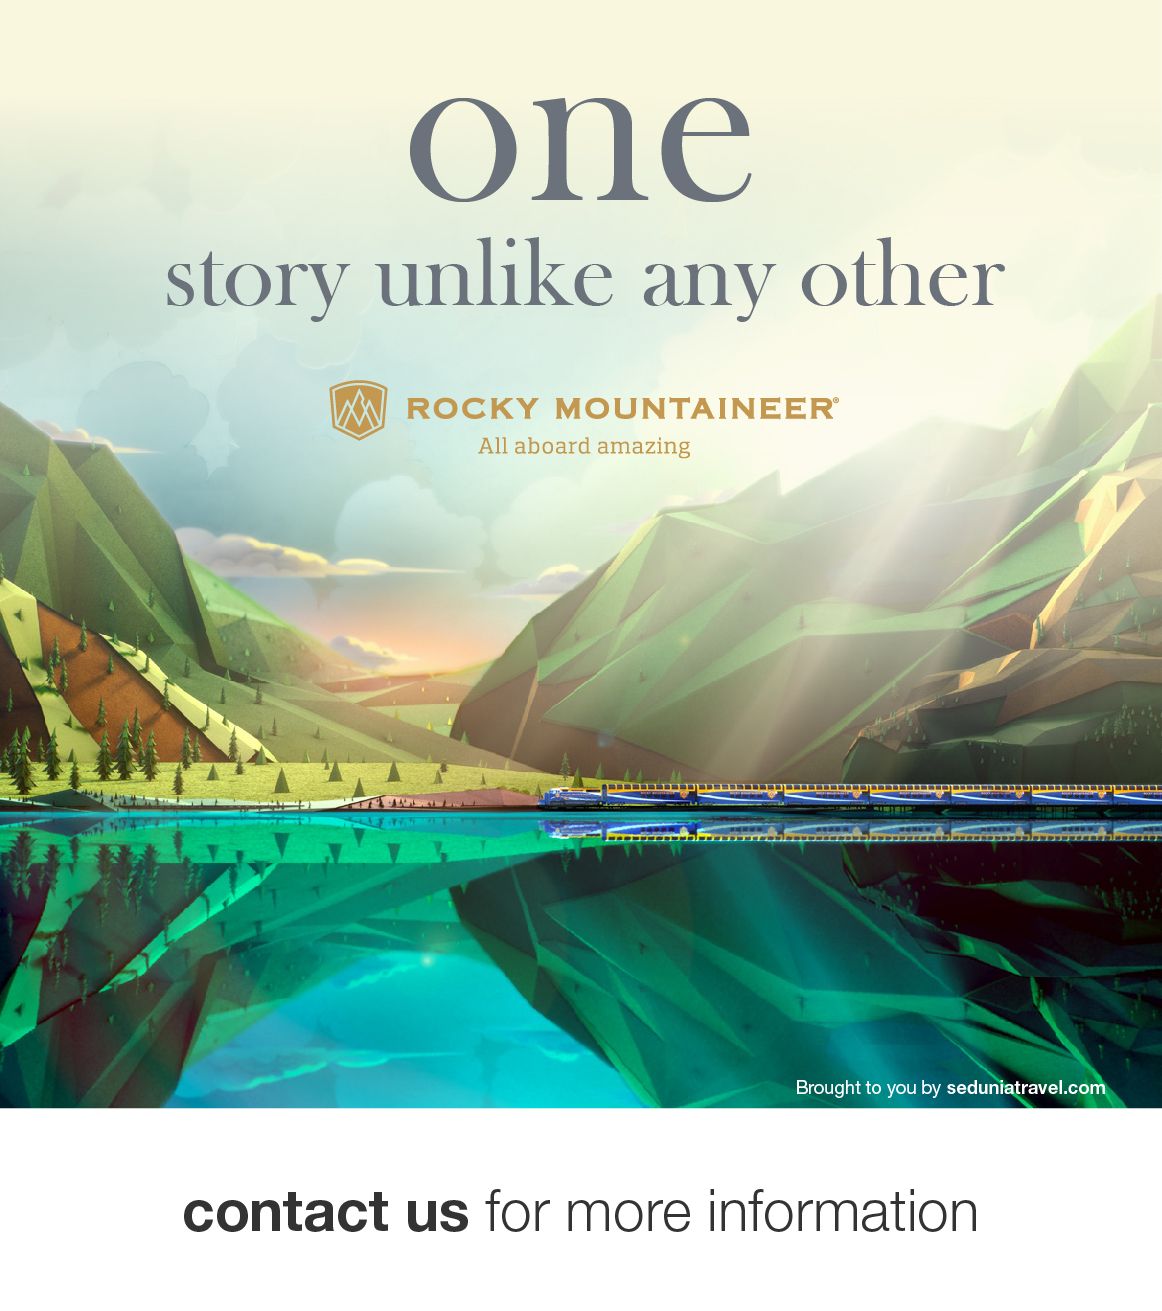 Rocky Mountaineer - Explore Canadian Wilderness Like Never